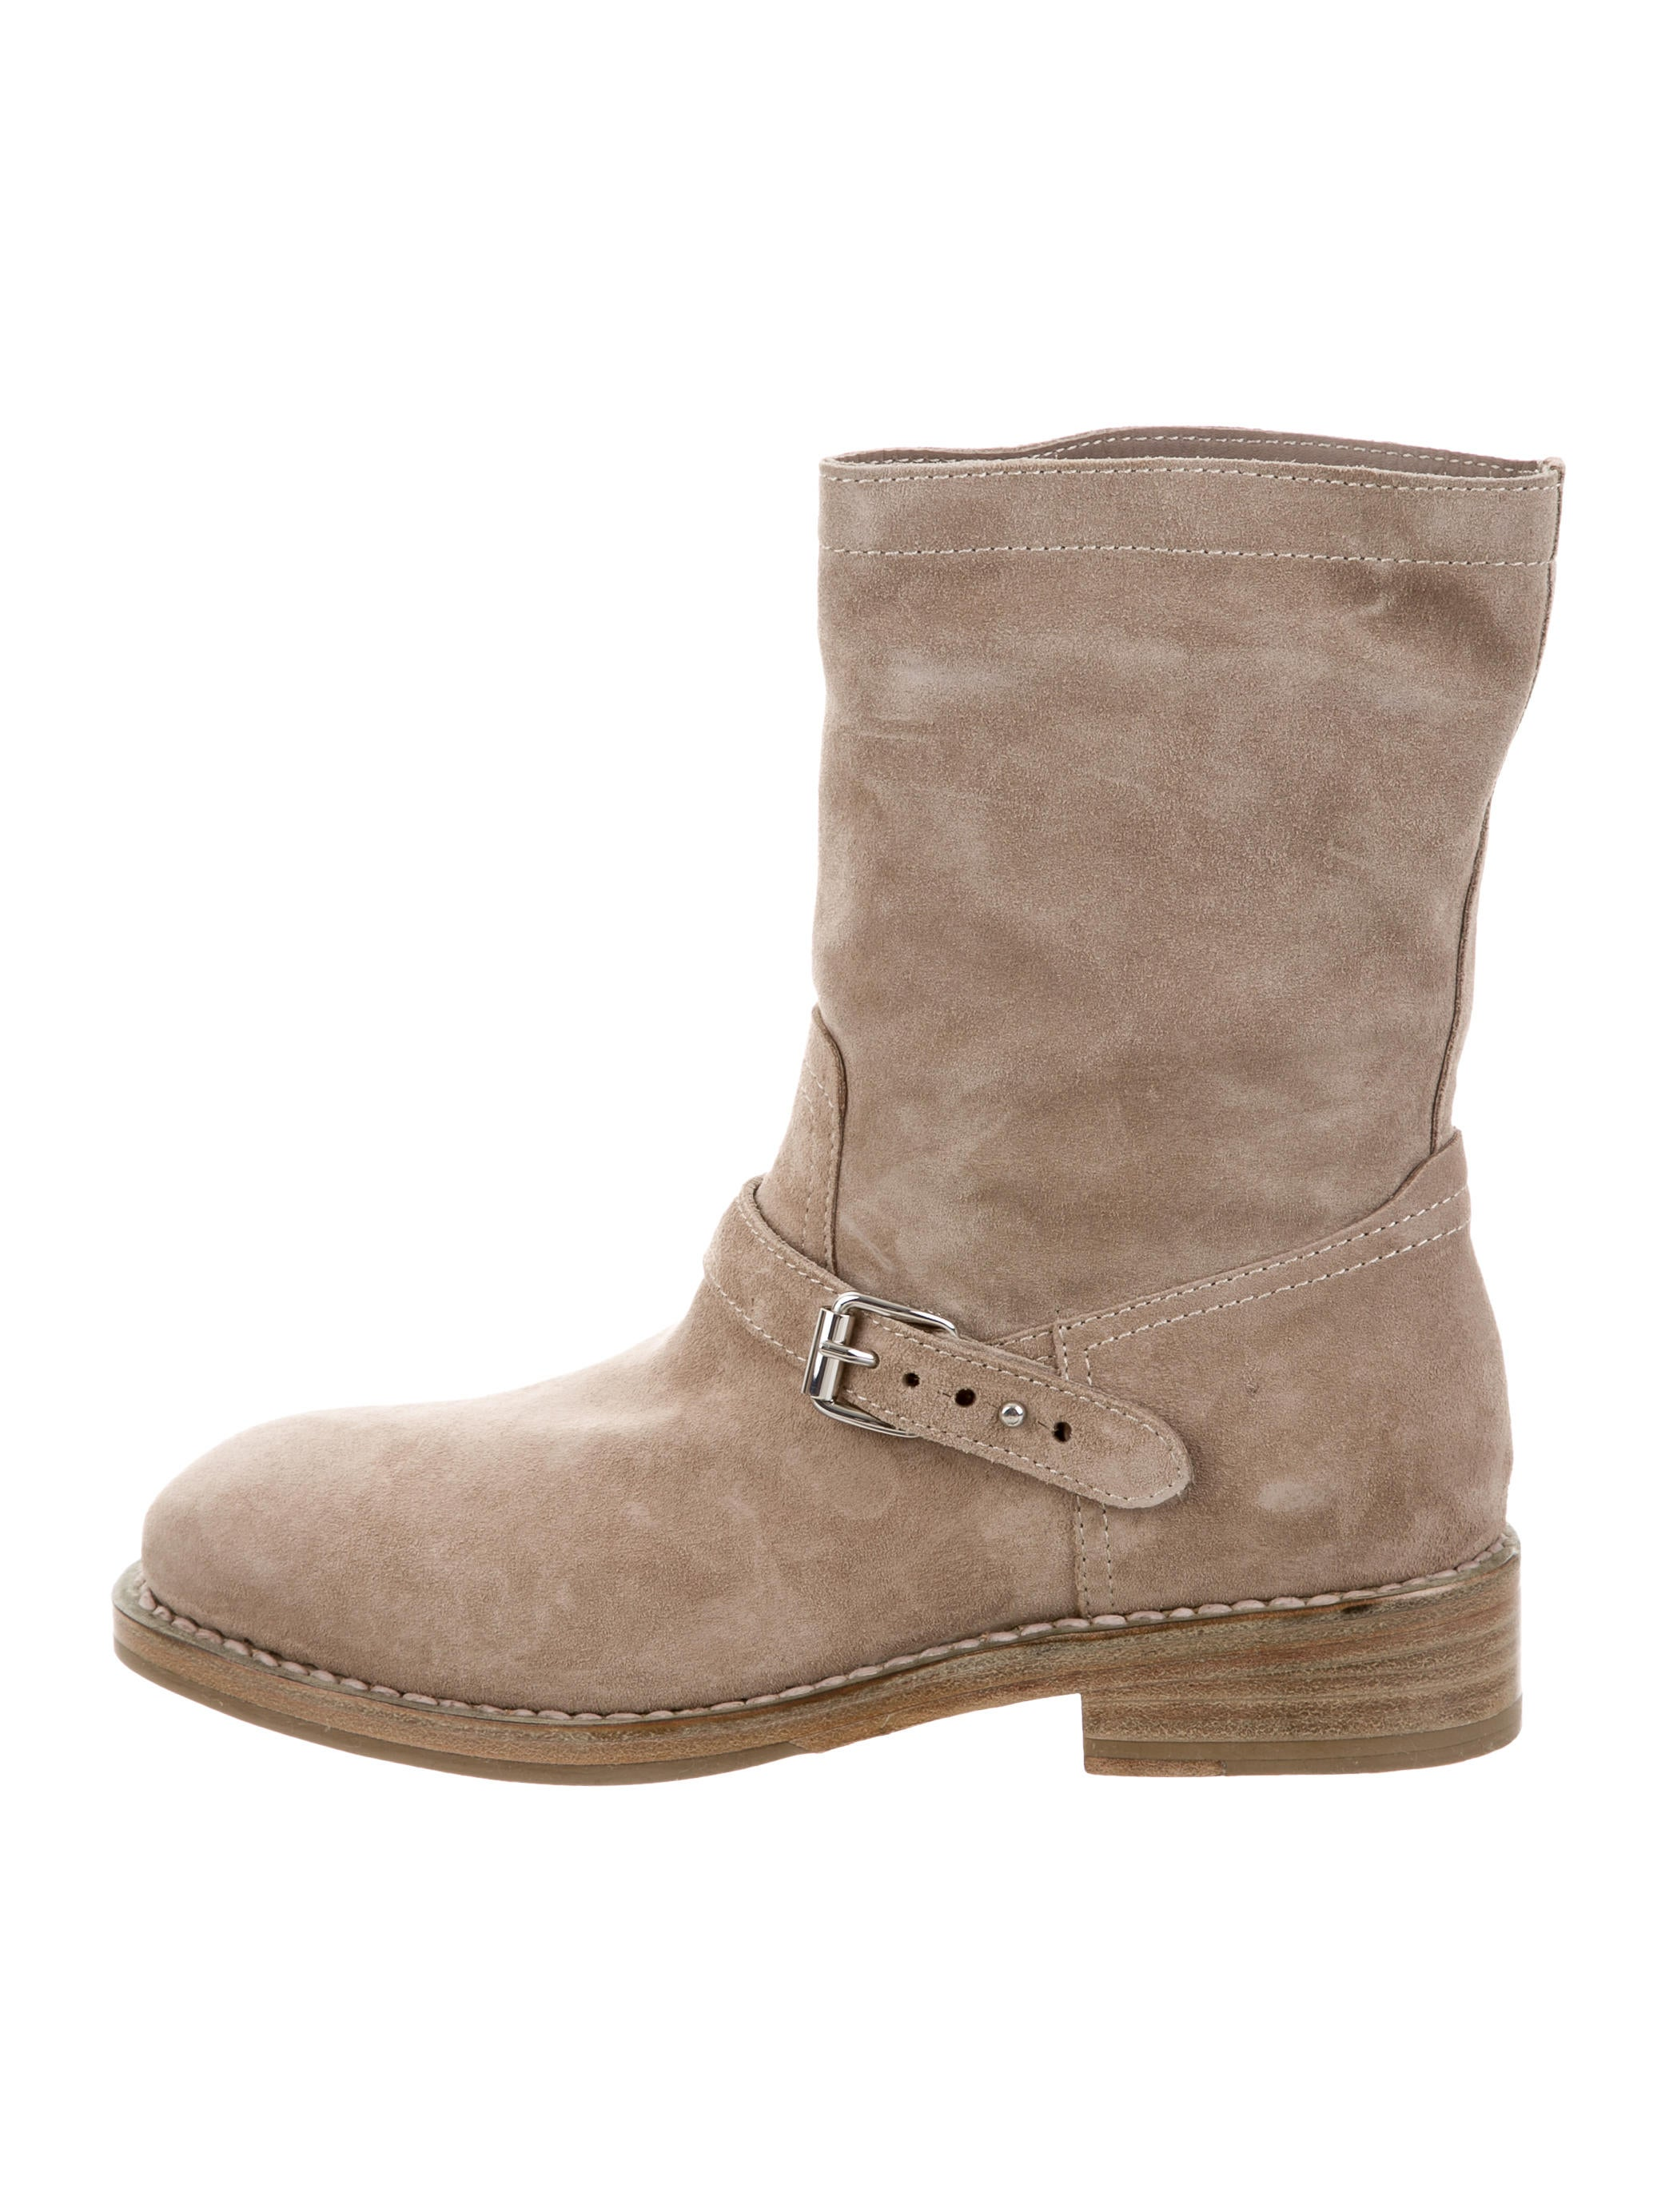 Rag & Bone Suede Oliver Ankle Boots w/ Tags very cheap for sale limited edition for sale free shipping newest free shipping sale 2AUE1